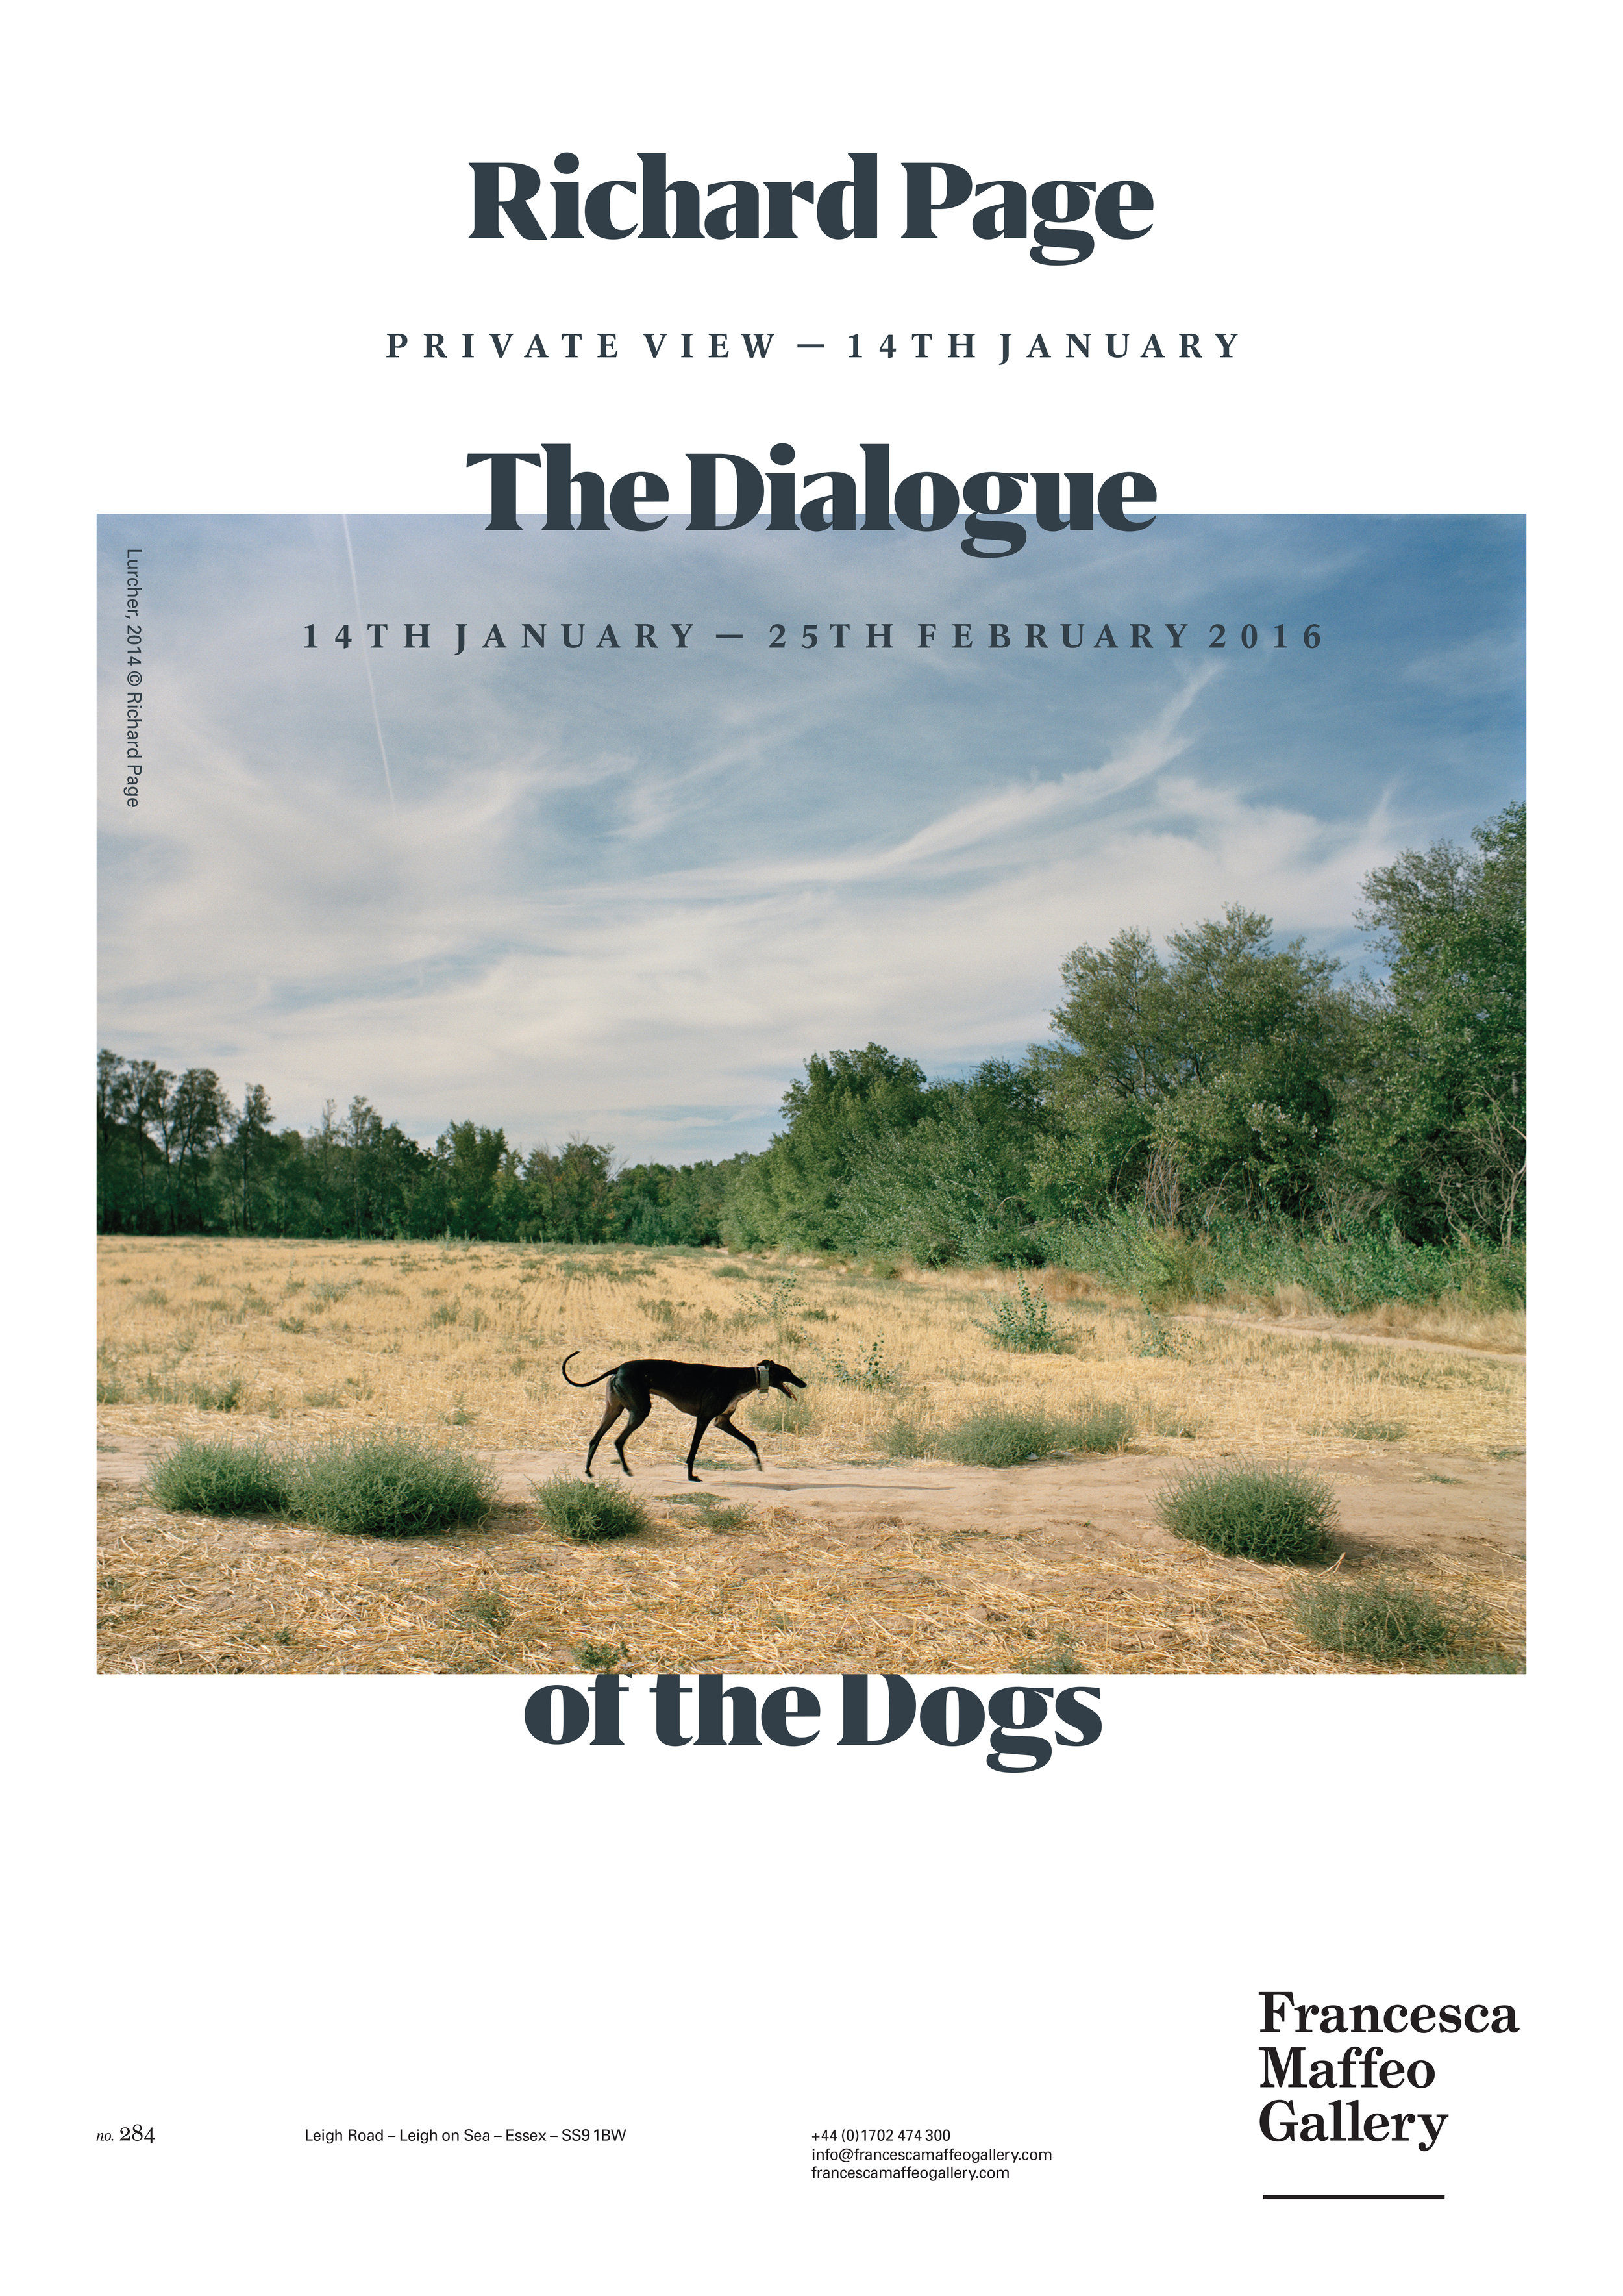 Richard Page | The Dialogue of the Dogs     Press Release      Print Sales